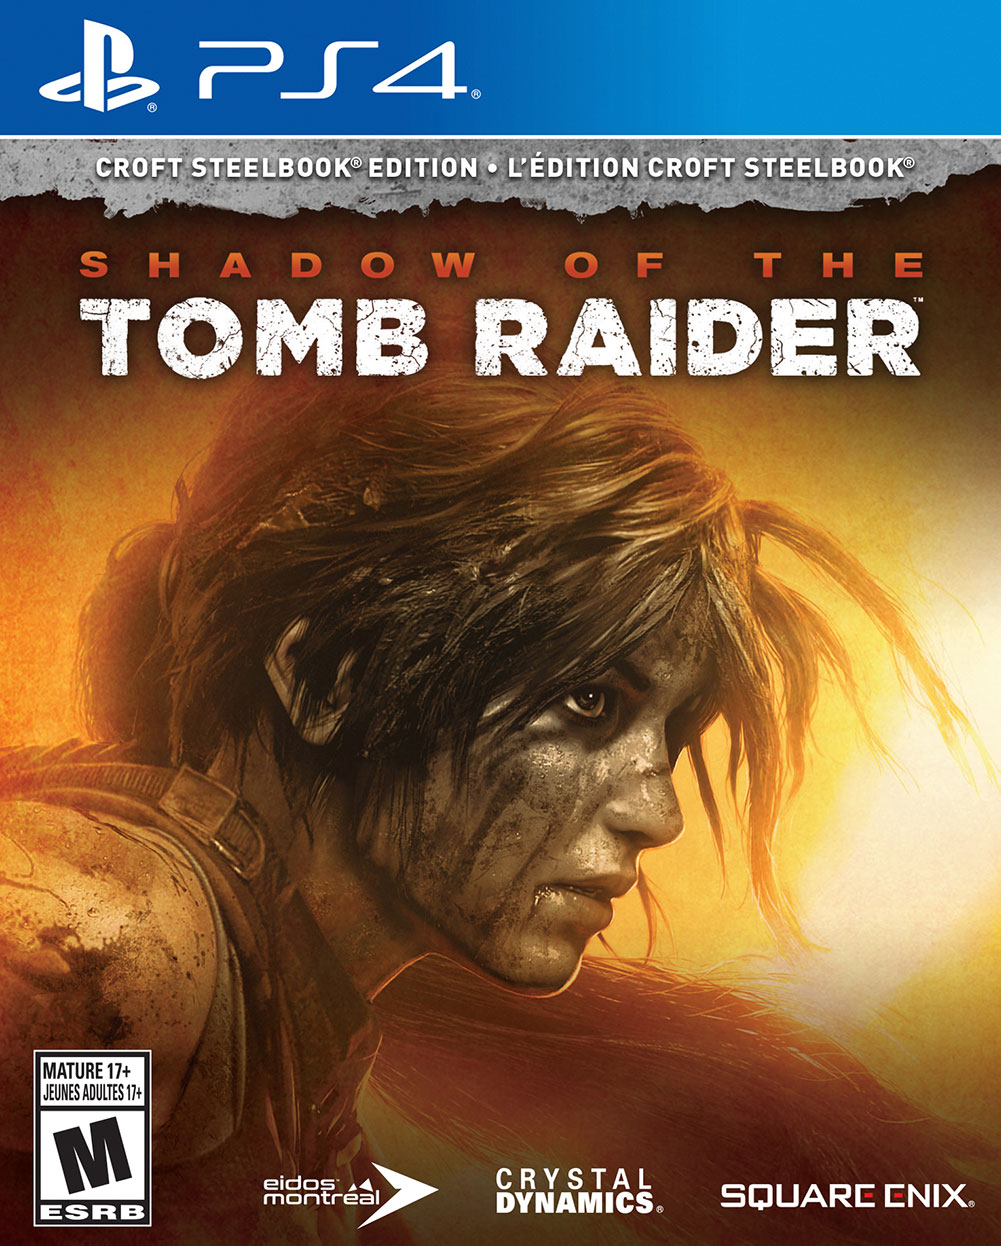 Shadow Of The Tomb Raider Croft Edition On Steam Giveaway